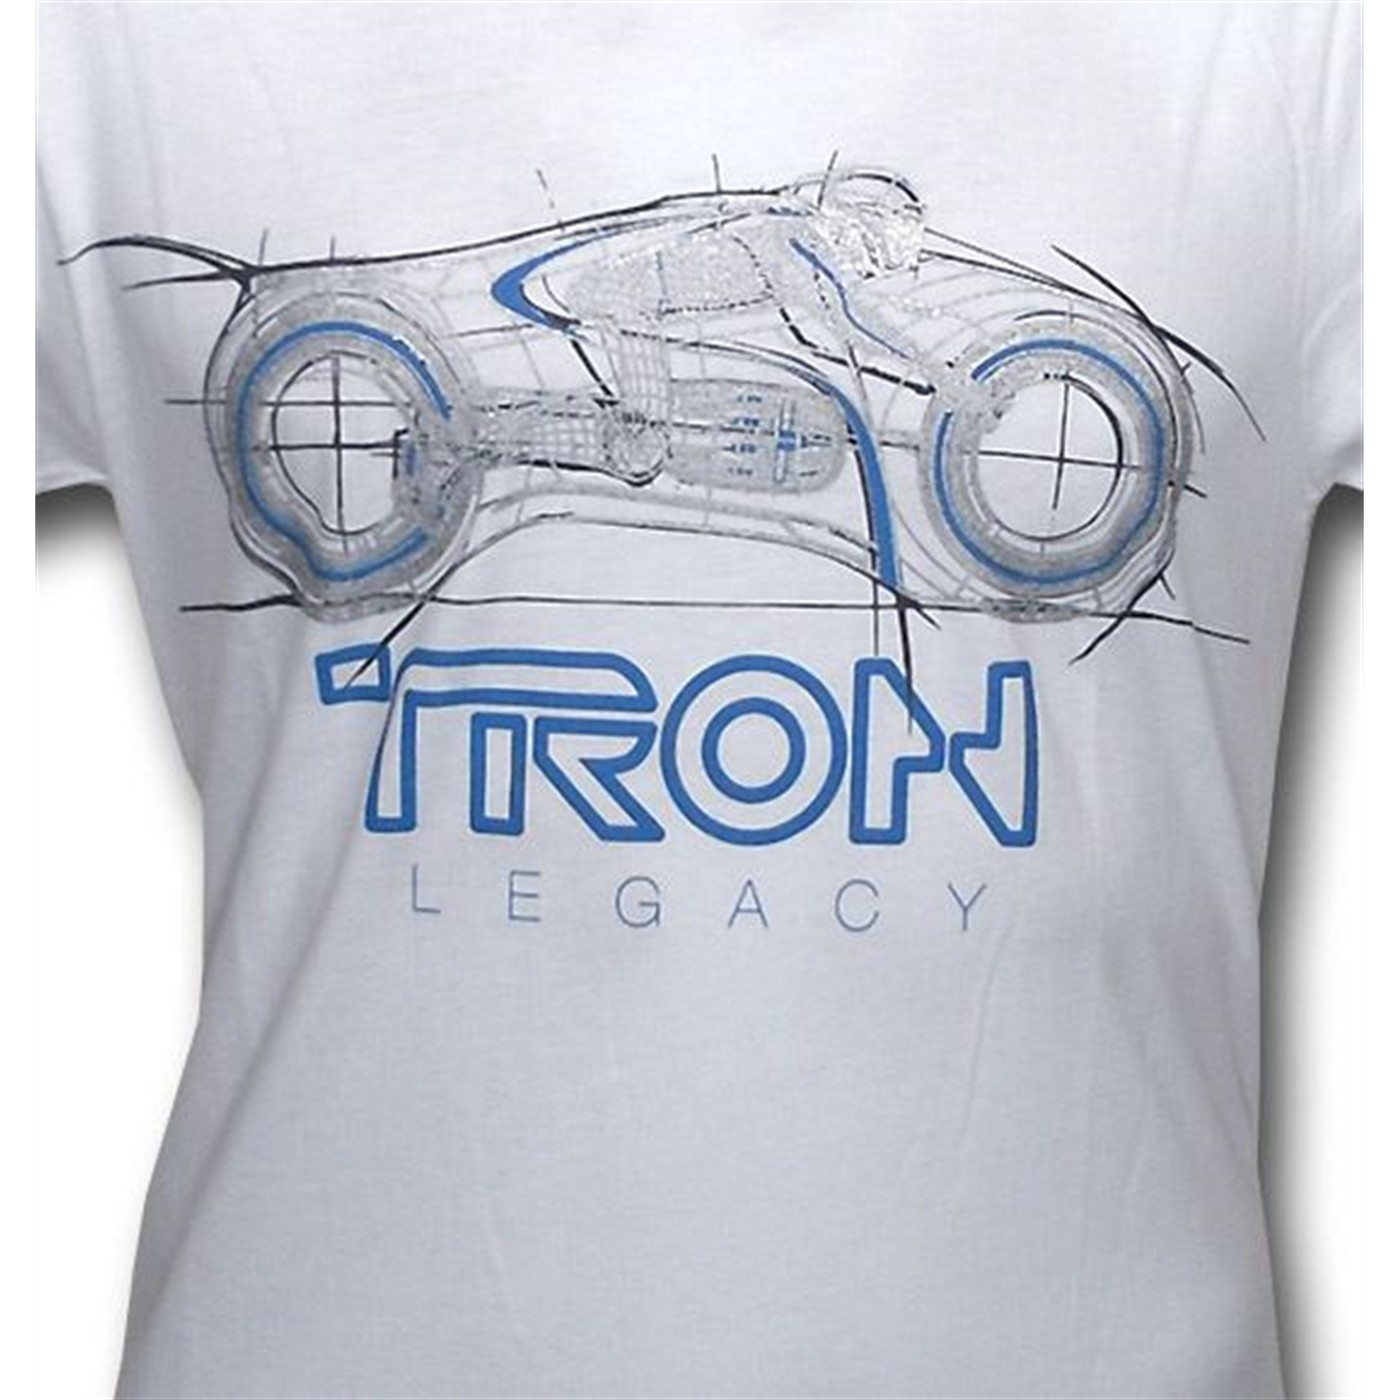 Tron Legacy Wireframe Light Cycle 30 Single T-Shirt